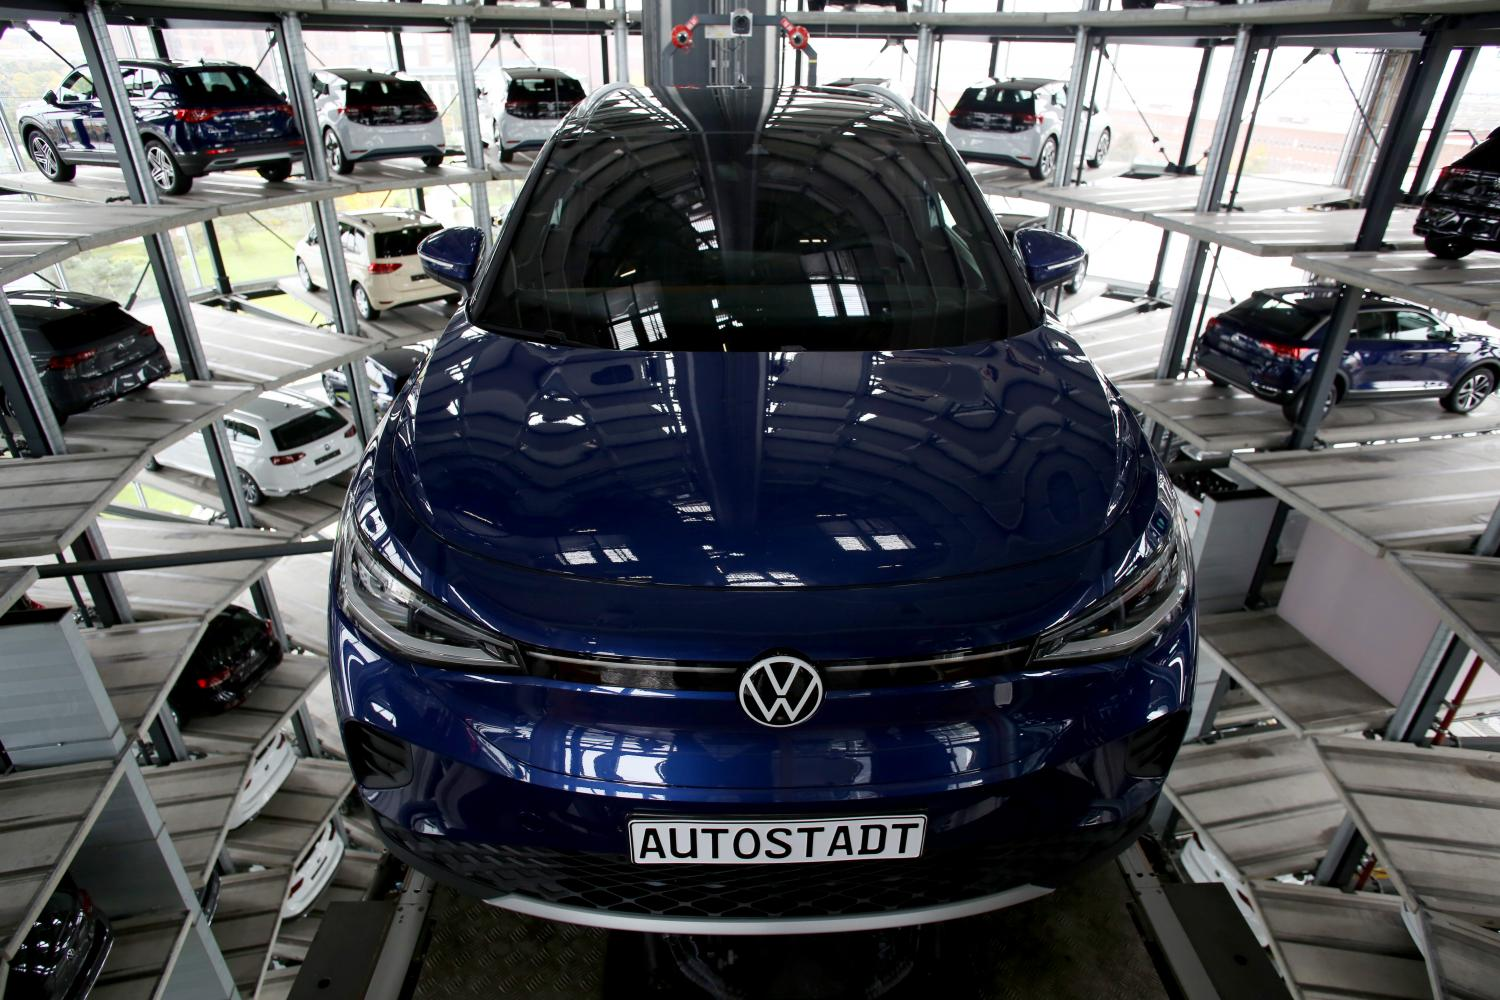 VW to turn island into green mobility hub